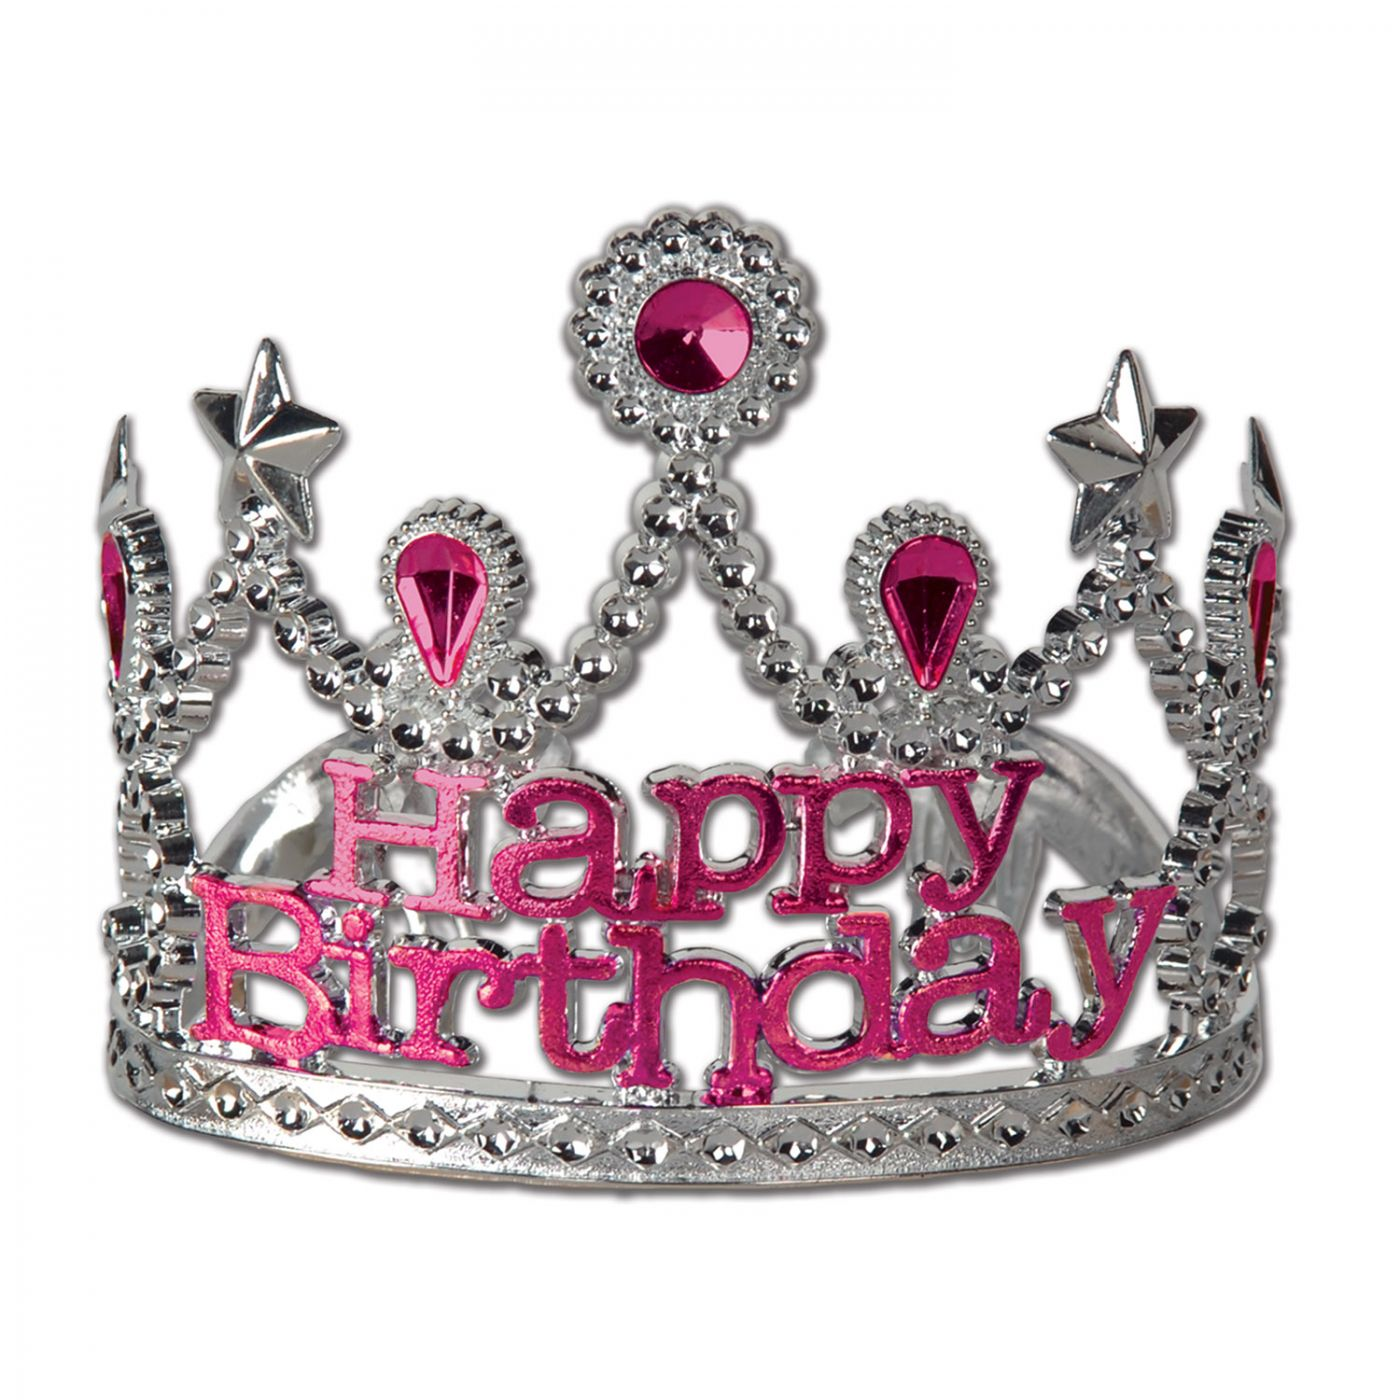 Plastic Happy Birthday Tiara image